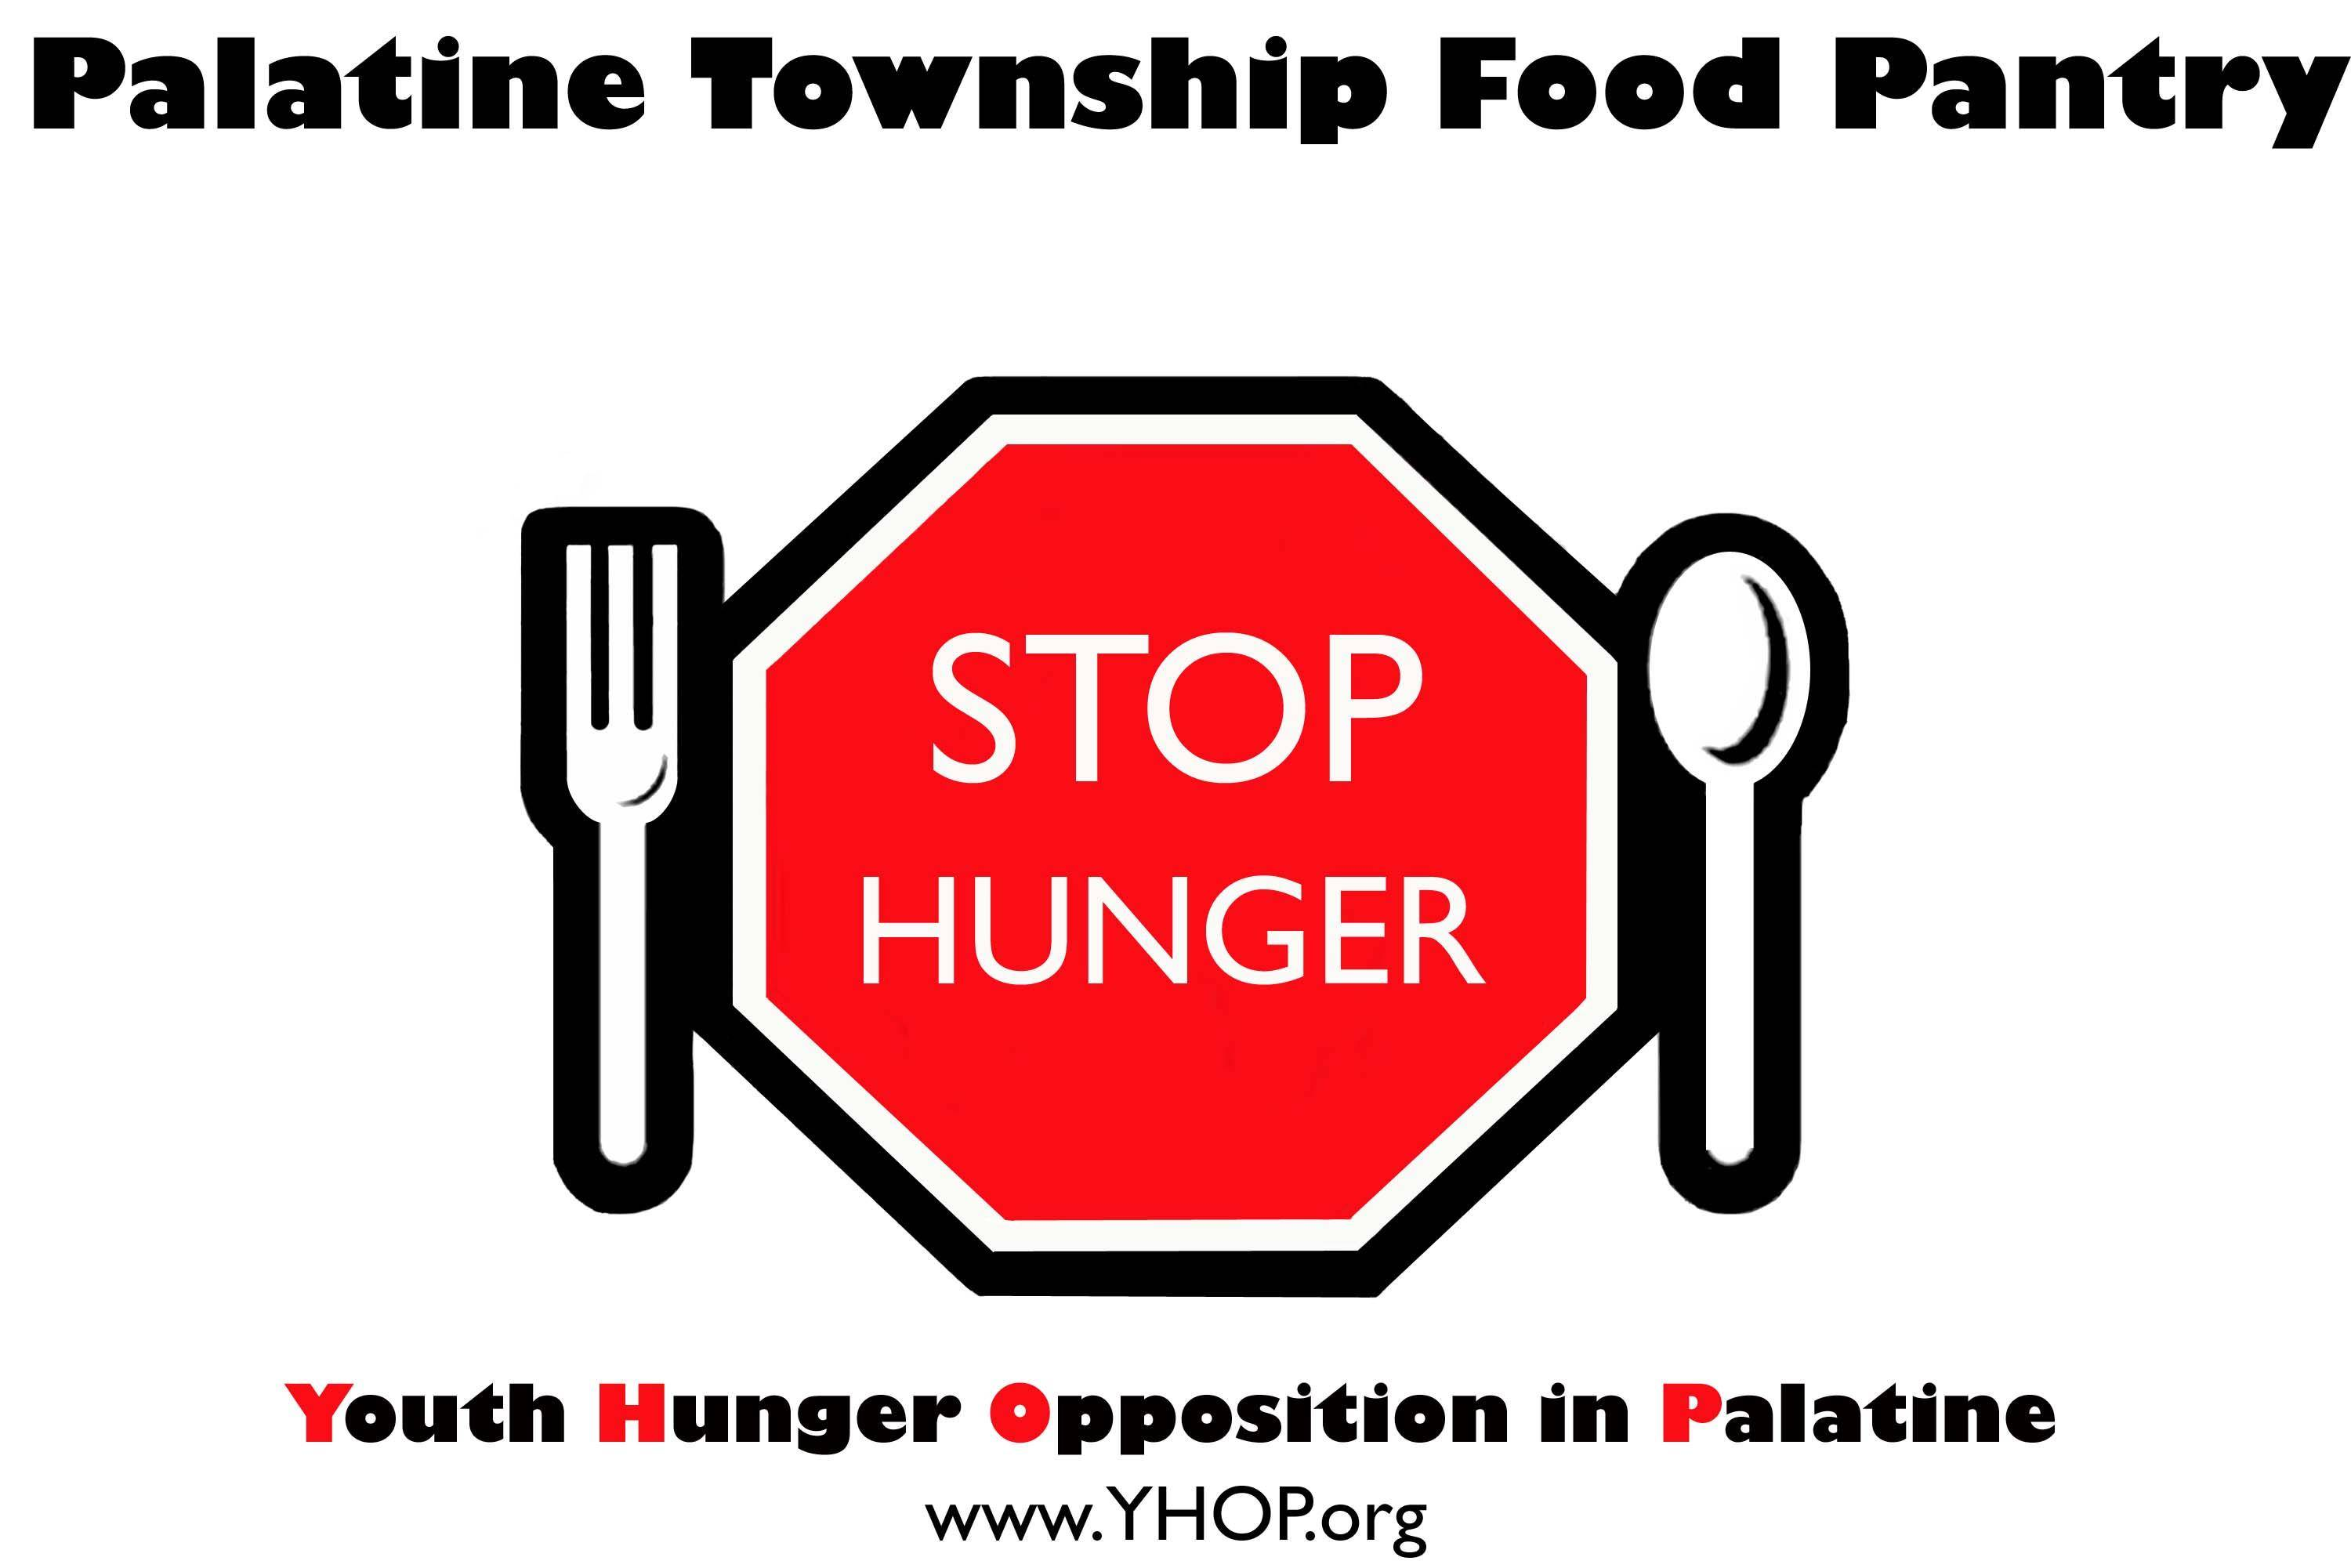 Look for the Food Pantry Truck logo and bring your donations to the July 5th Palatine Parade.Paul Pioch